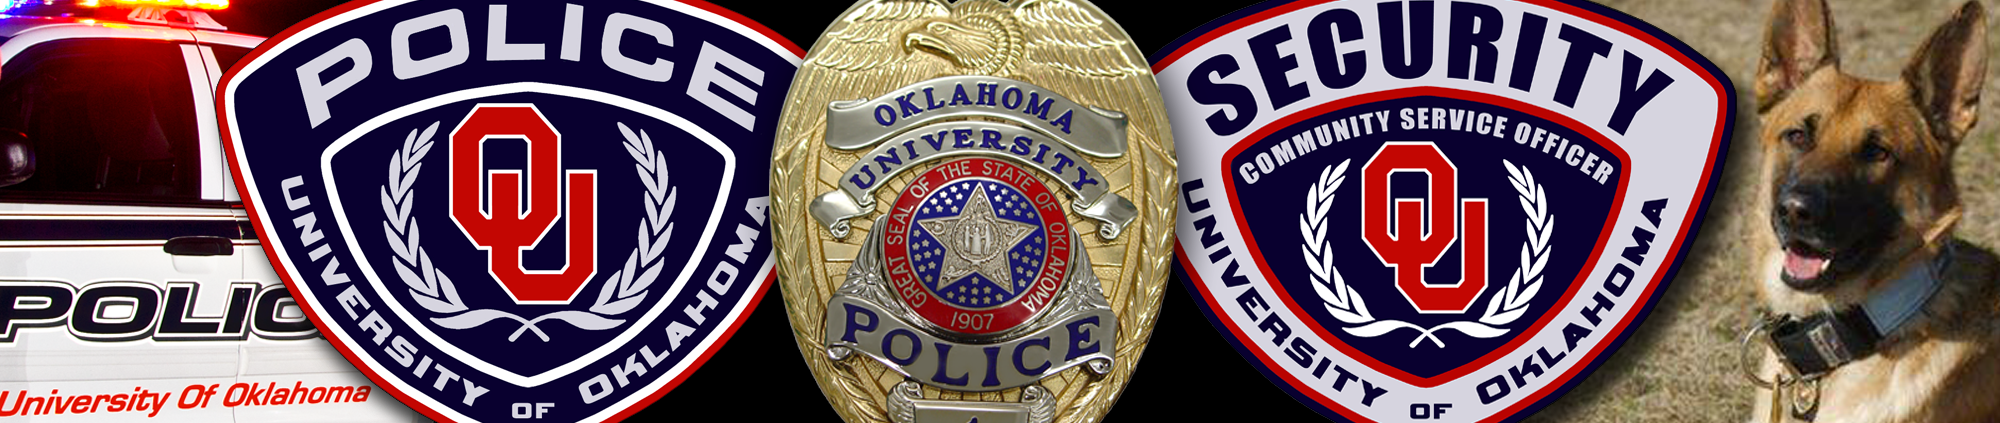 University of Oklahoma Police Department -- The Police Notebook